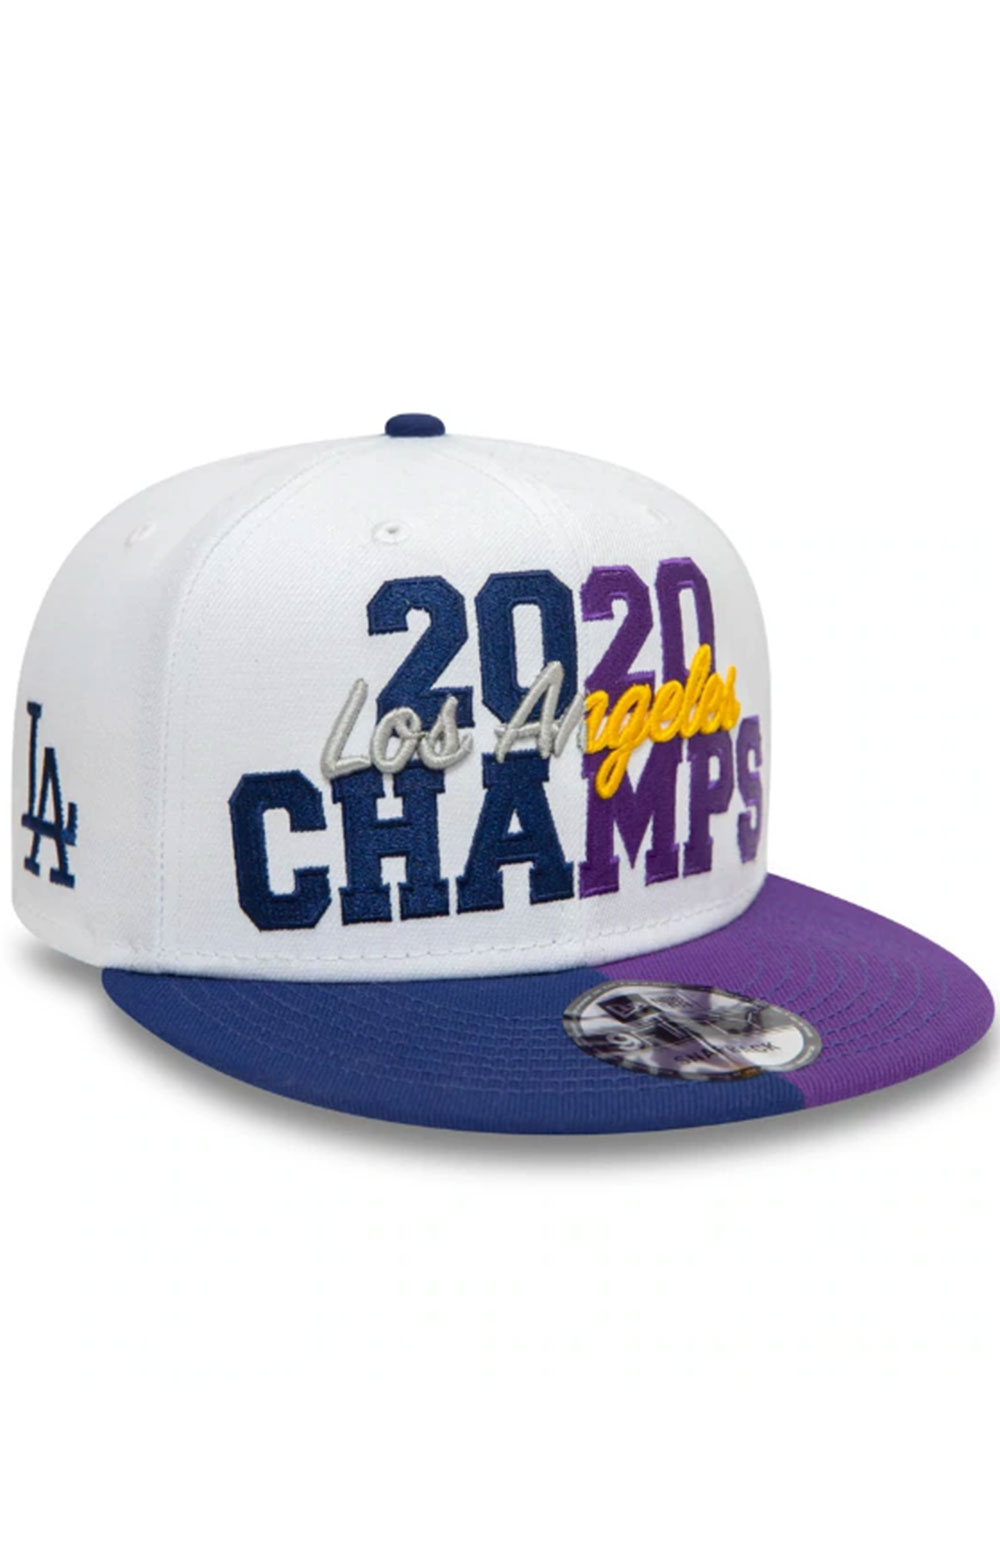 Los Angeles Co Champs 2020 9FIFTY Snap-Back - White  3